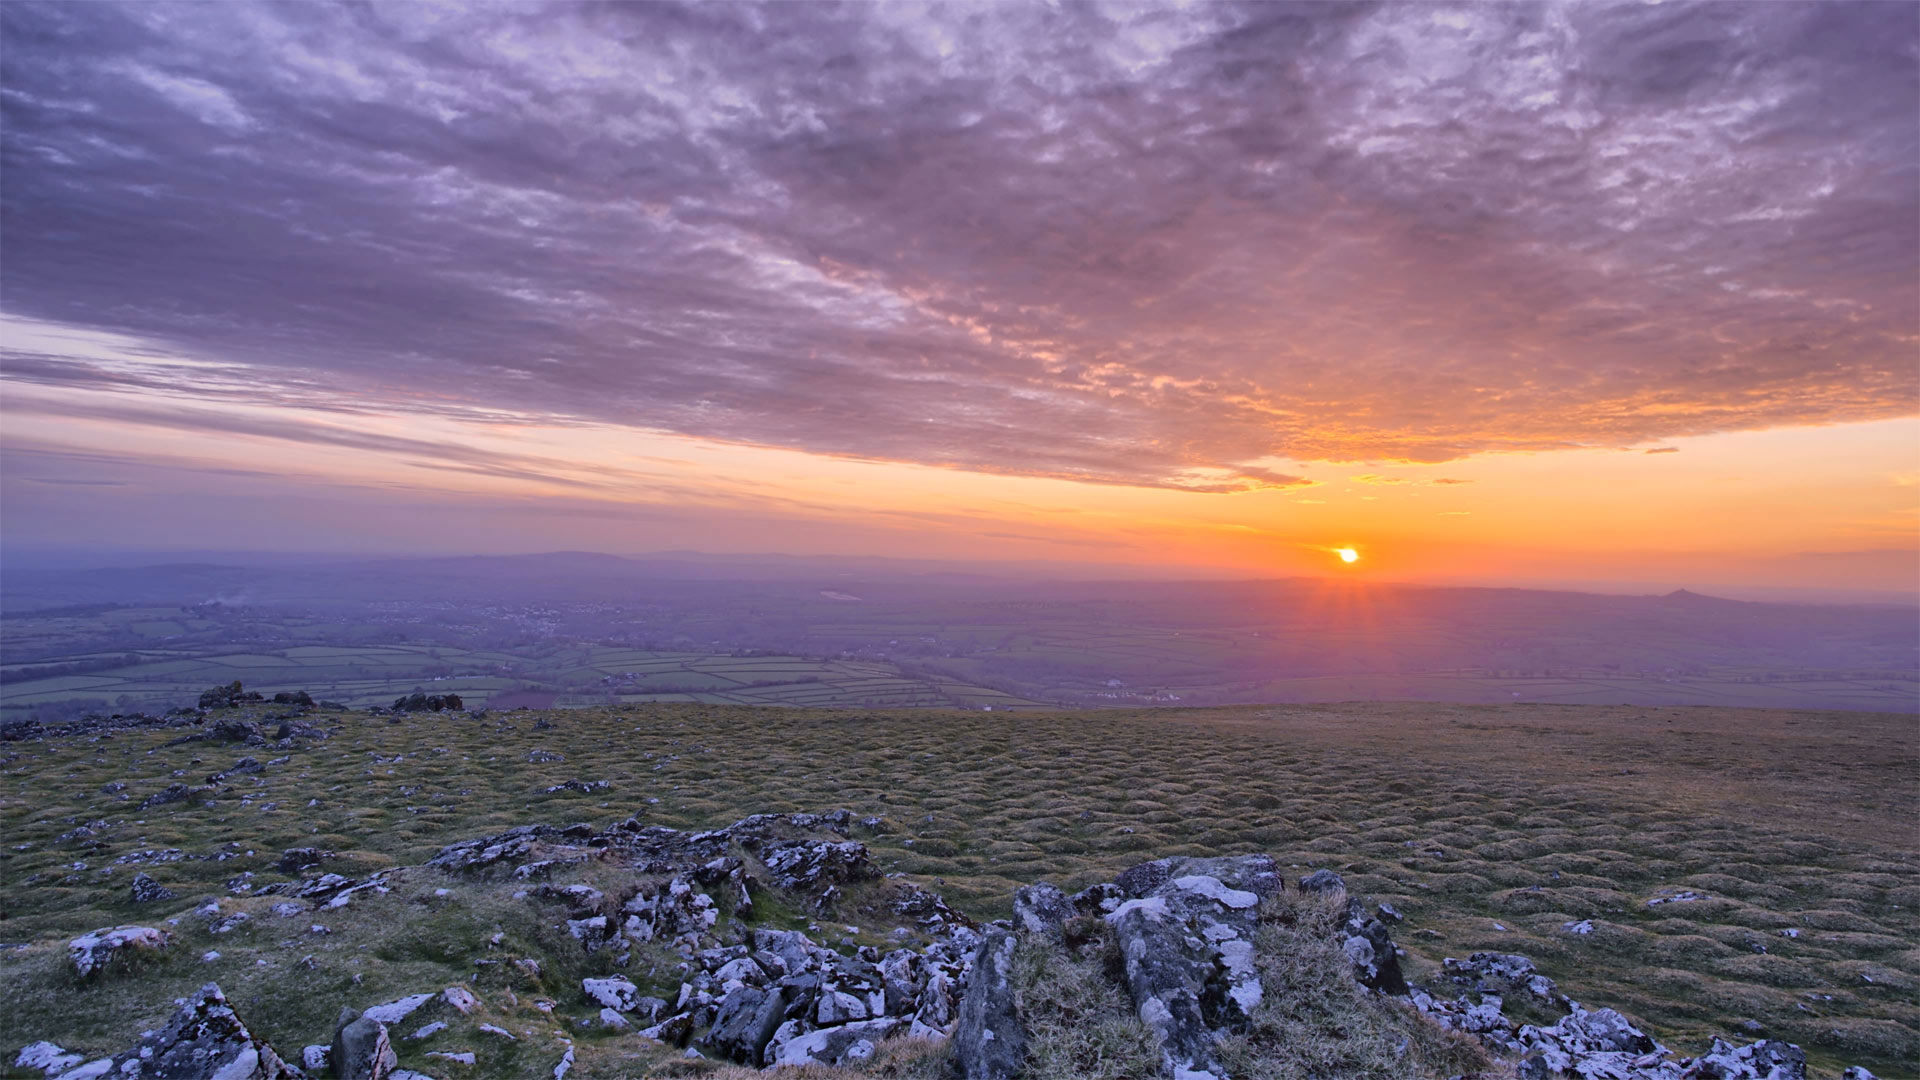 Sun setting in Dartmoor National Park, Devon, England